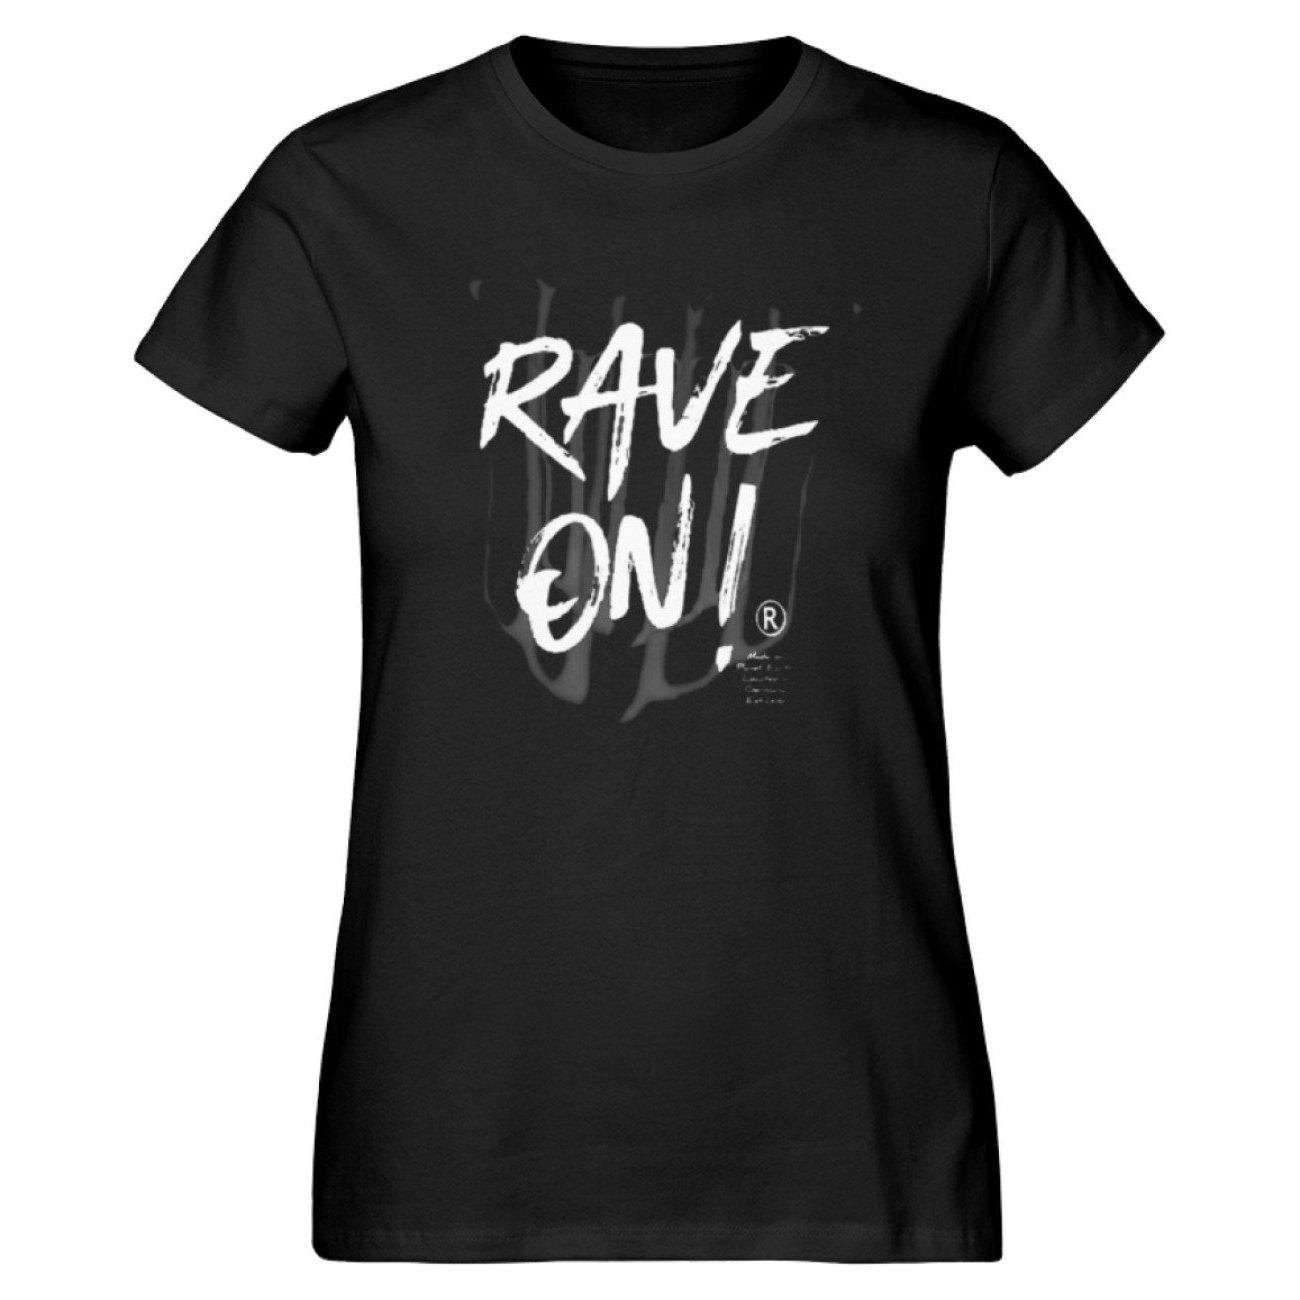 Rave On!® - Made On Planet Earth B2k20 - Damen Premium Organic Shirt-Damen Premium Organic Shirt ST/ST-Black-M-Rave-On! I www.rave-on.shop I Deine Rave & Techno Szene Shop I brand, Design - Rave On!® - Made On Planet Earth B2k20, marke, on, rave, raver, techno - Sexy Festival Streetwear , Clubwear & Raver Style